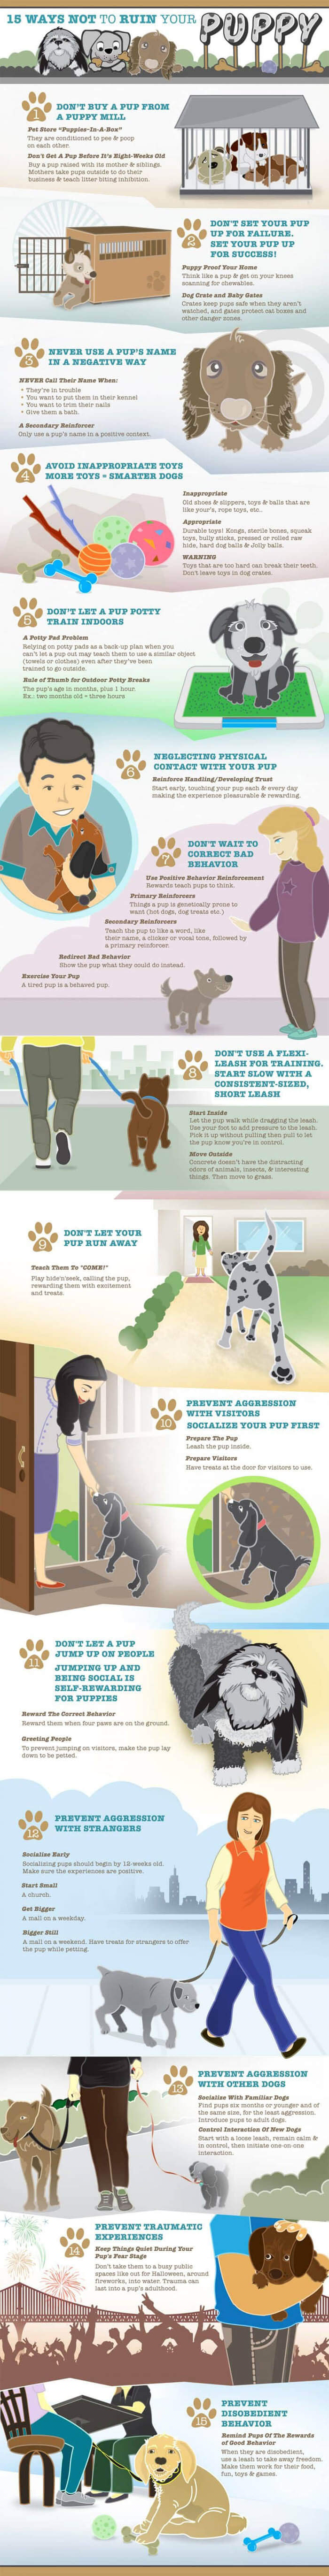 HOW TO SOCIALIZE YOUR PUPPY INFOGRAPHICS